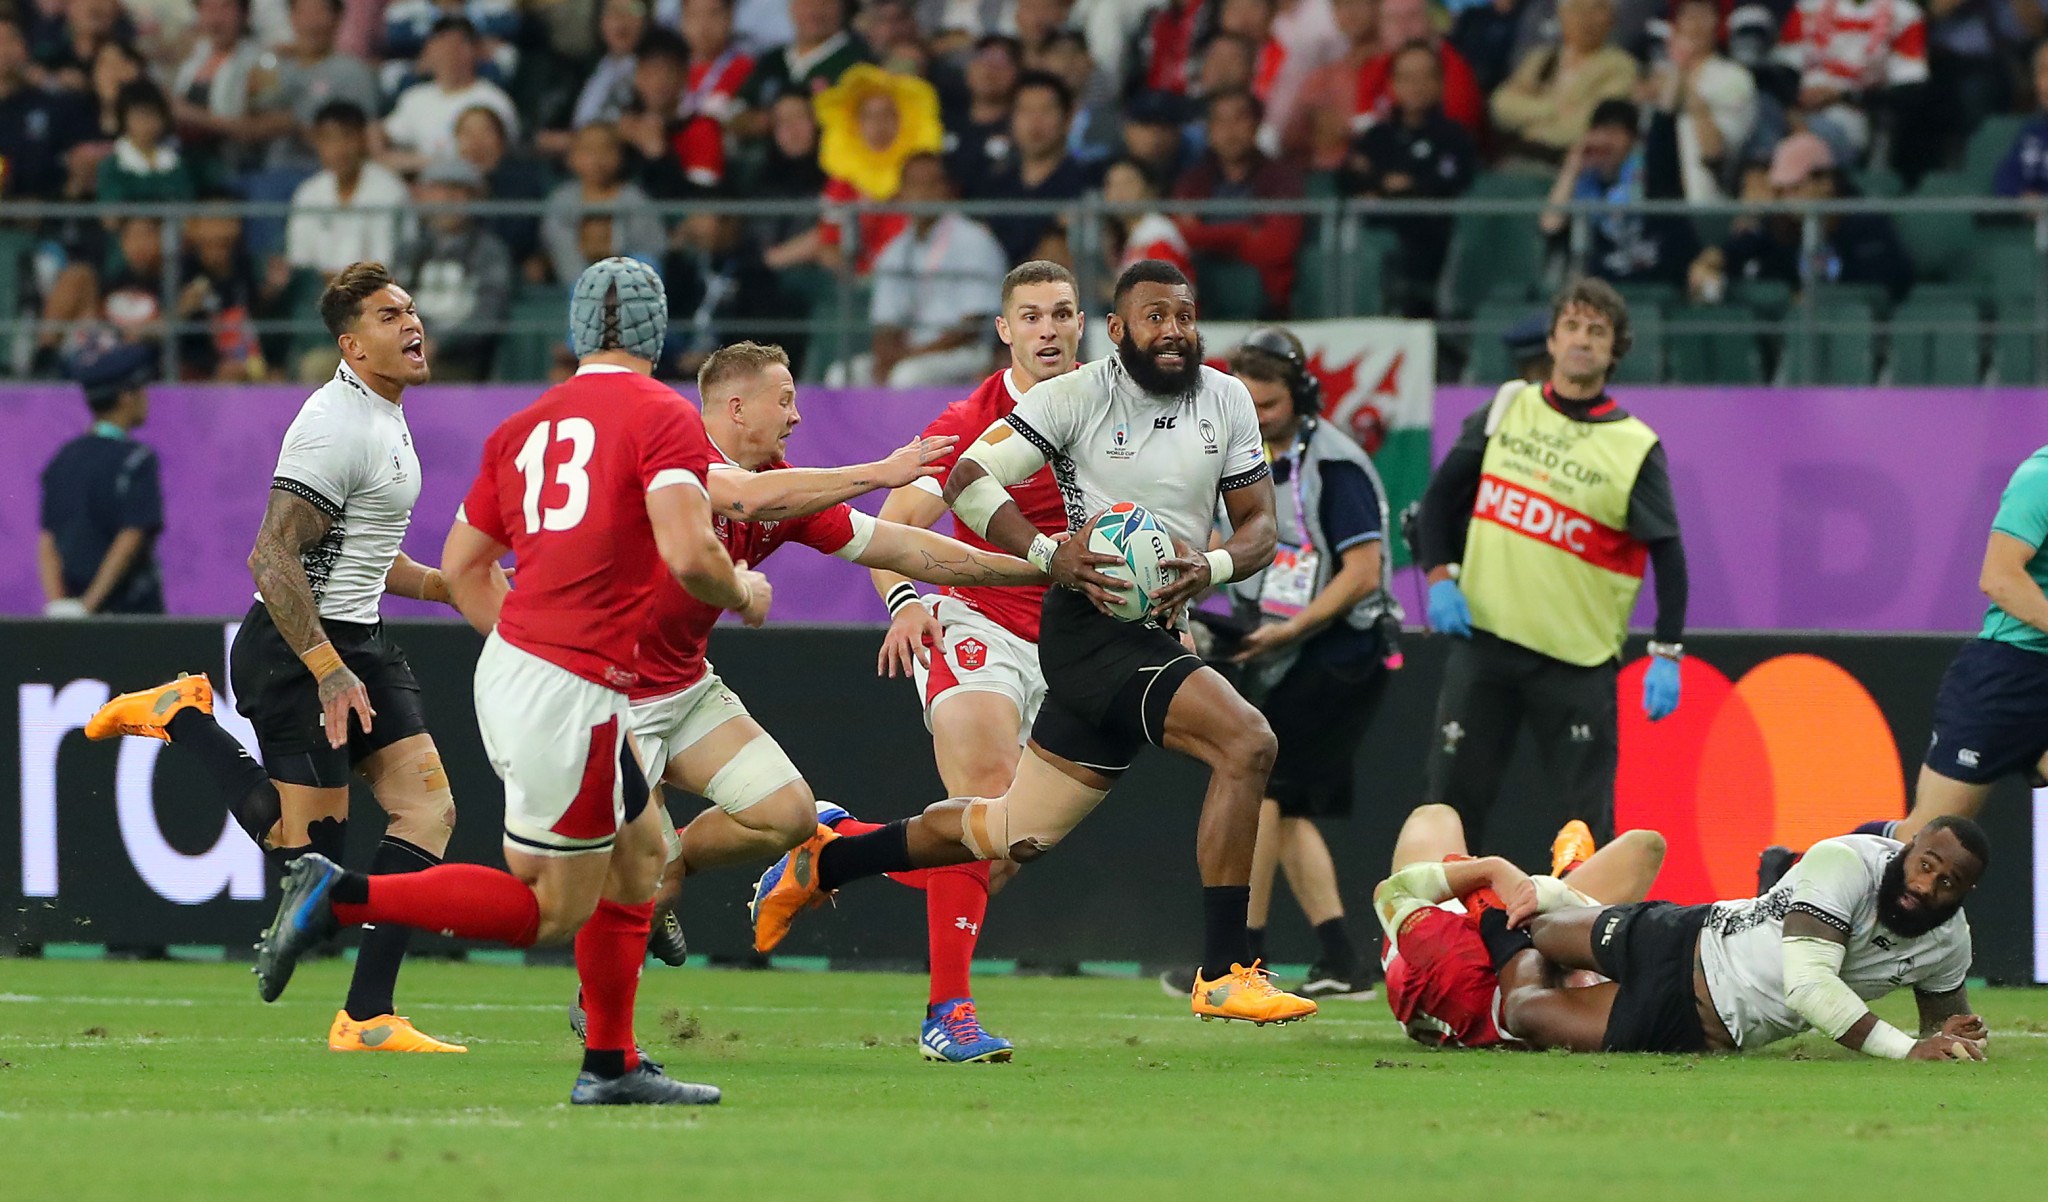 Fiji's backs caused the Welsh defence problems all game ©Getty Images